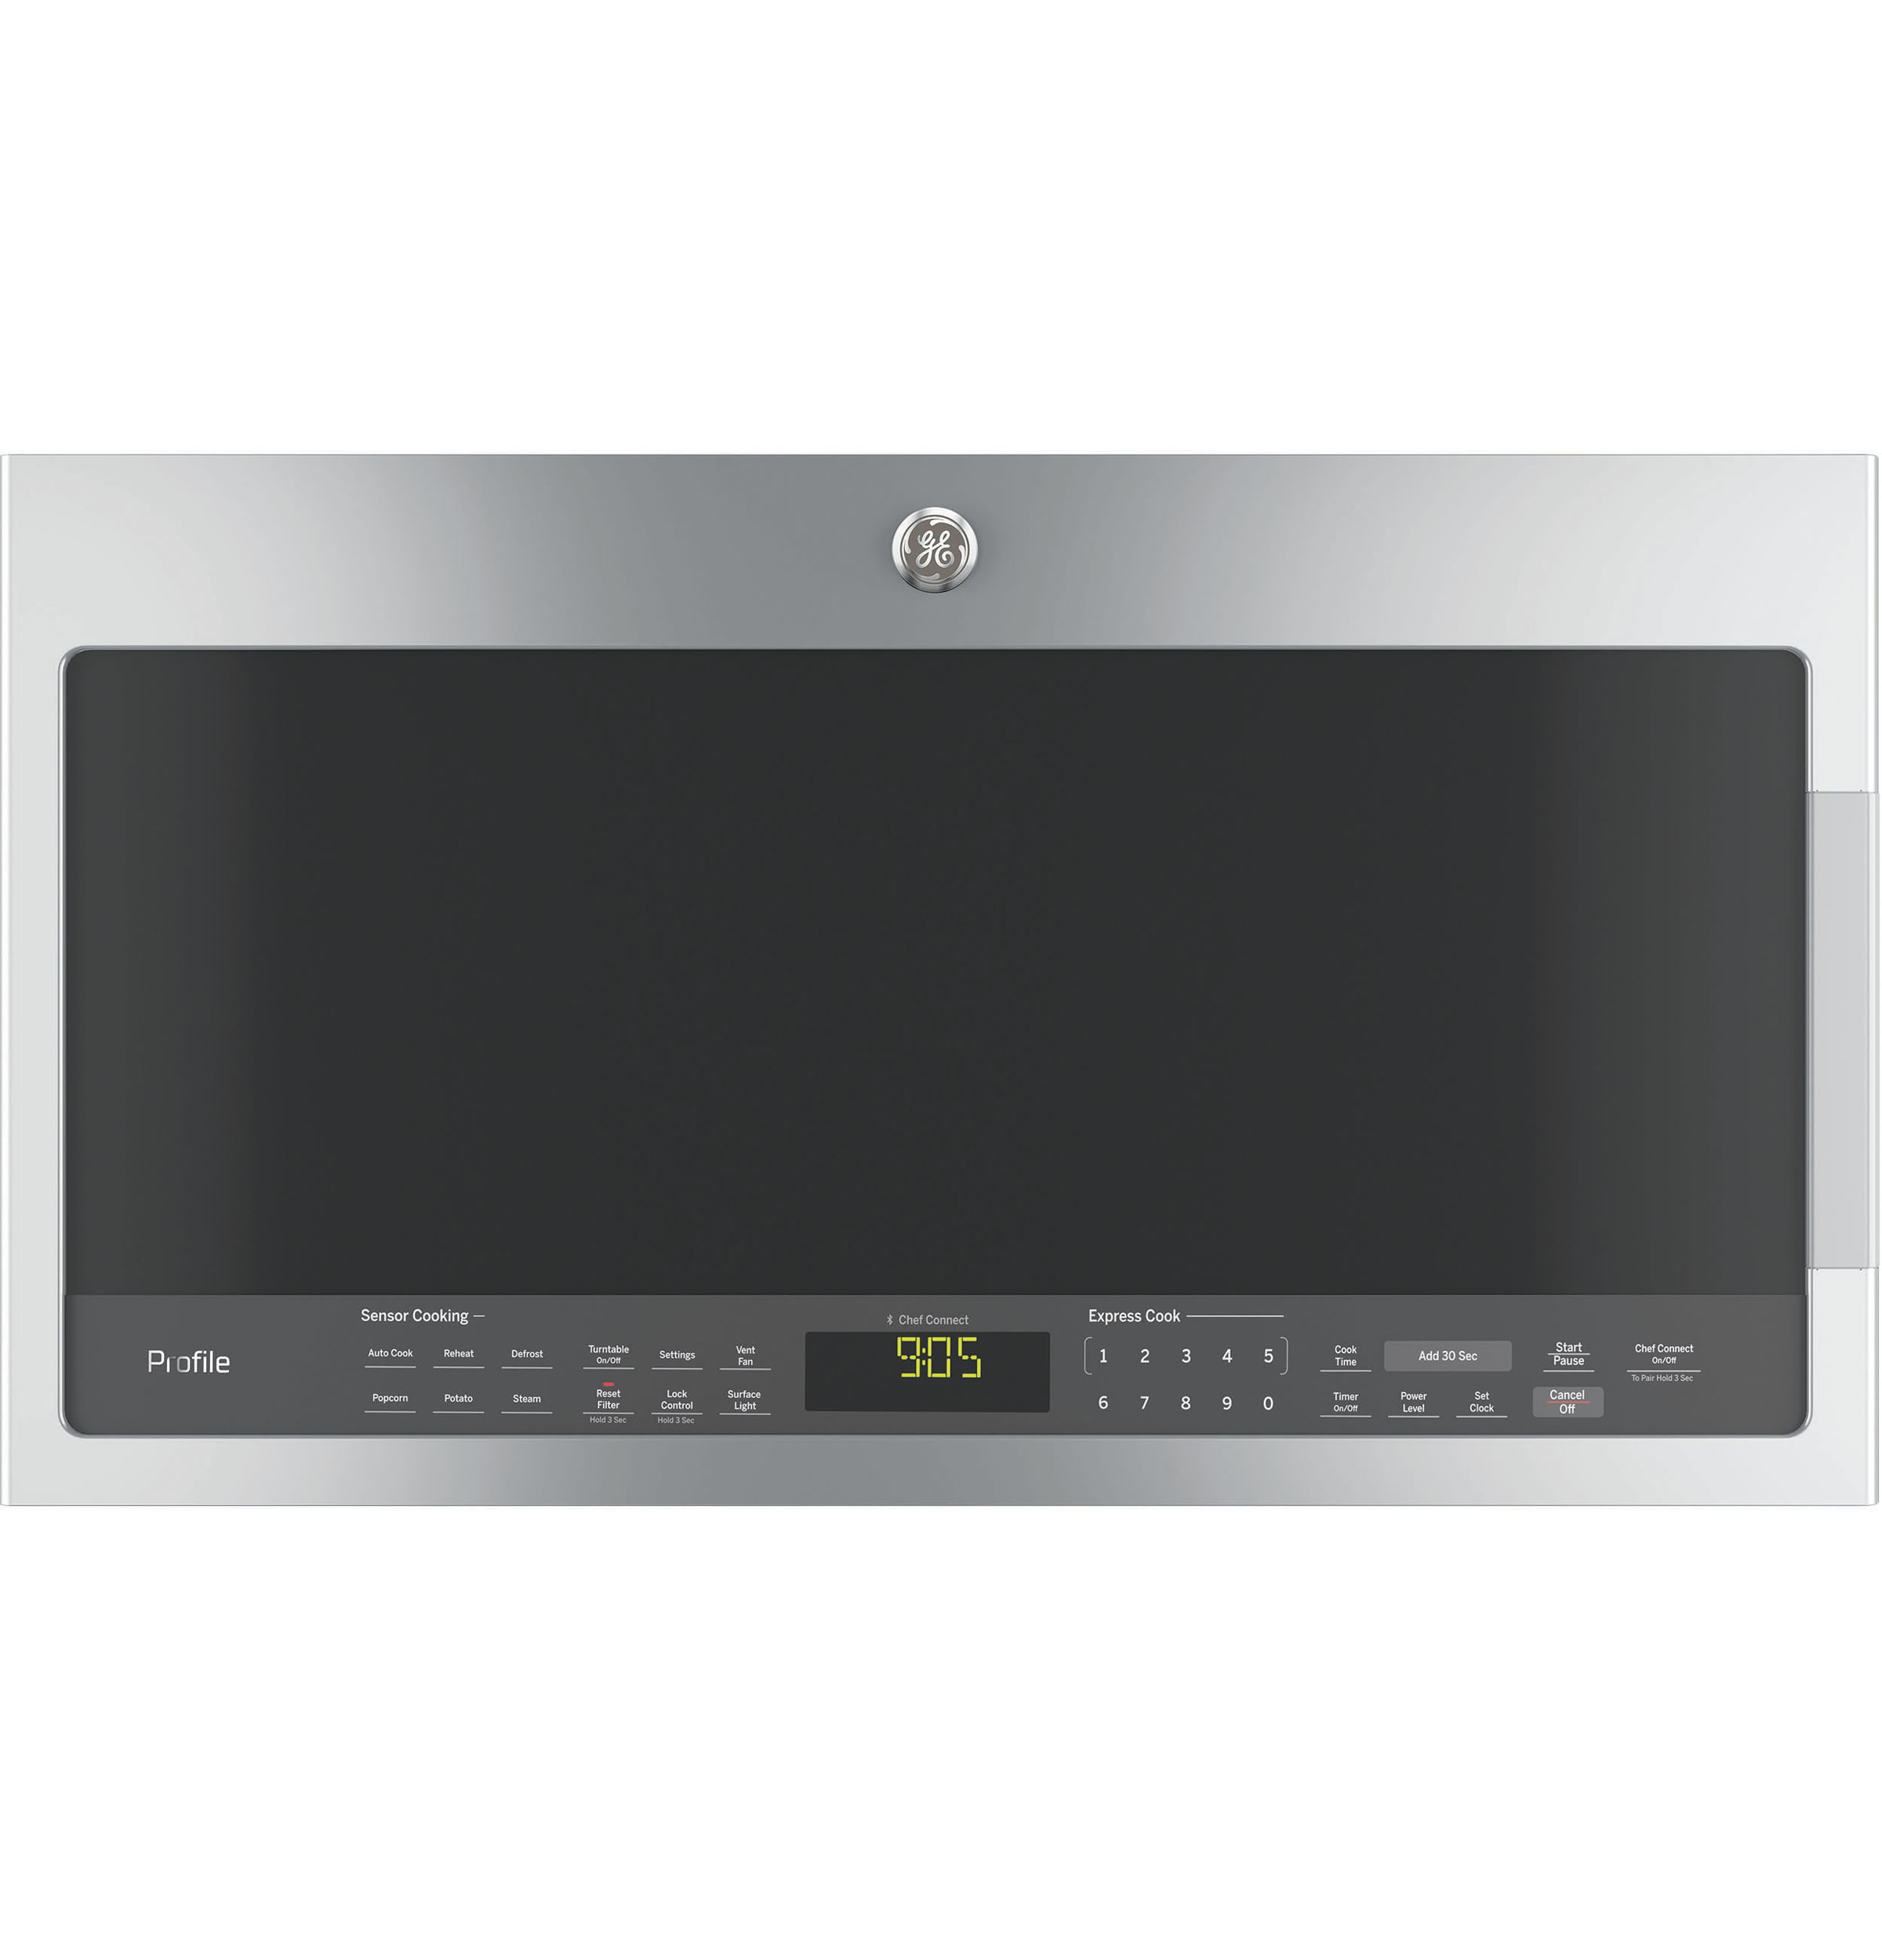 Model: PVM9005SJSS | GE Profile GE Profile™ Series 2.1 Cu. Ft. Over-the-Range Sensor Microwave Oven